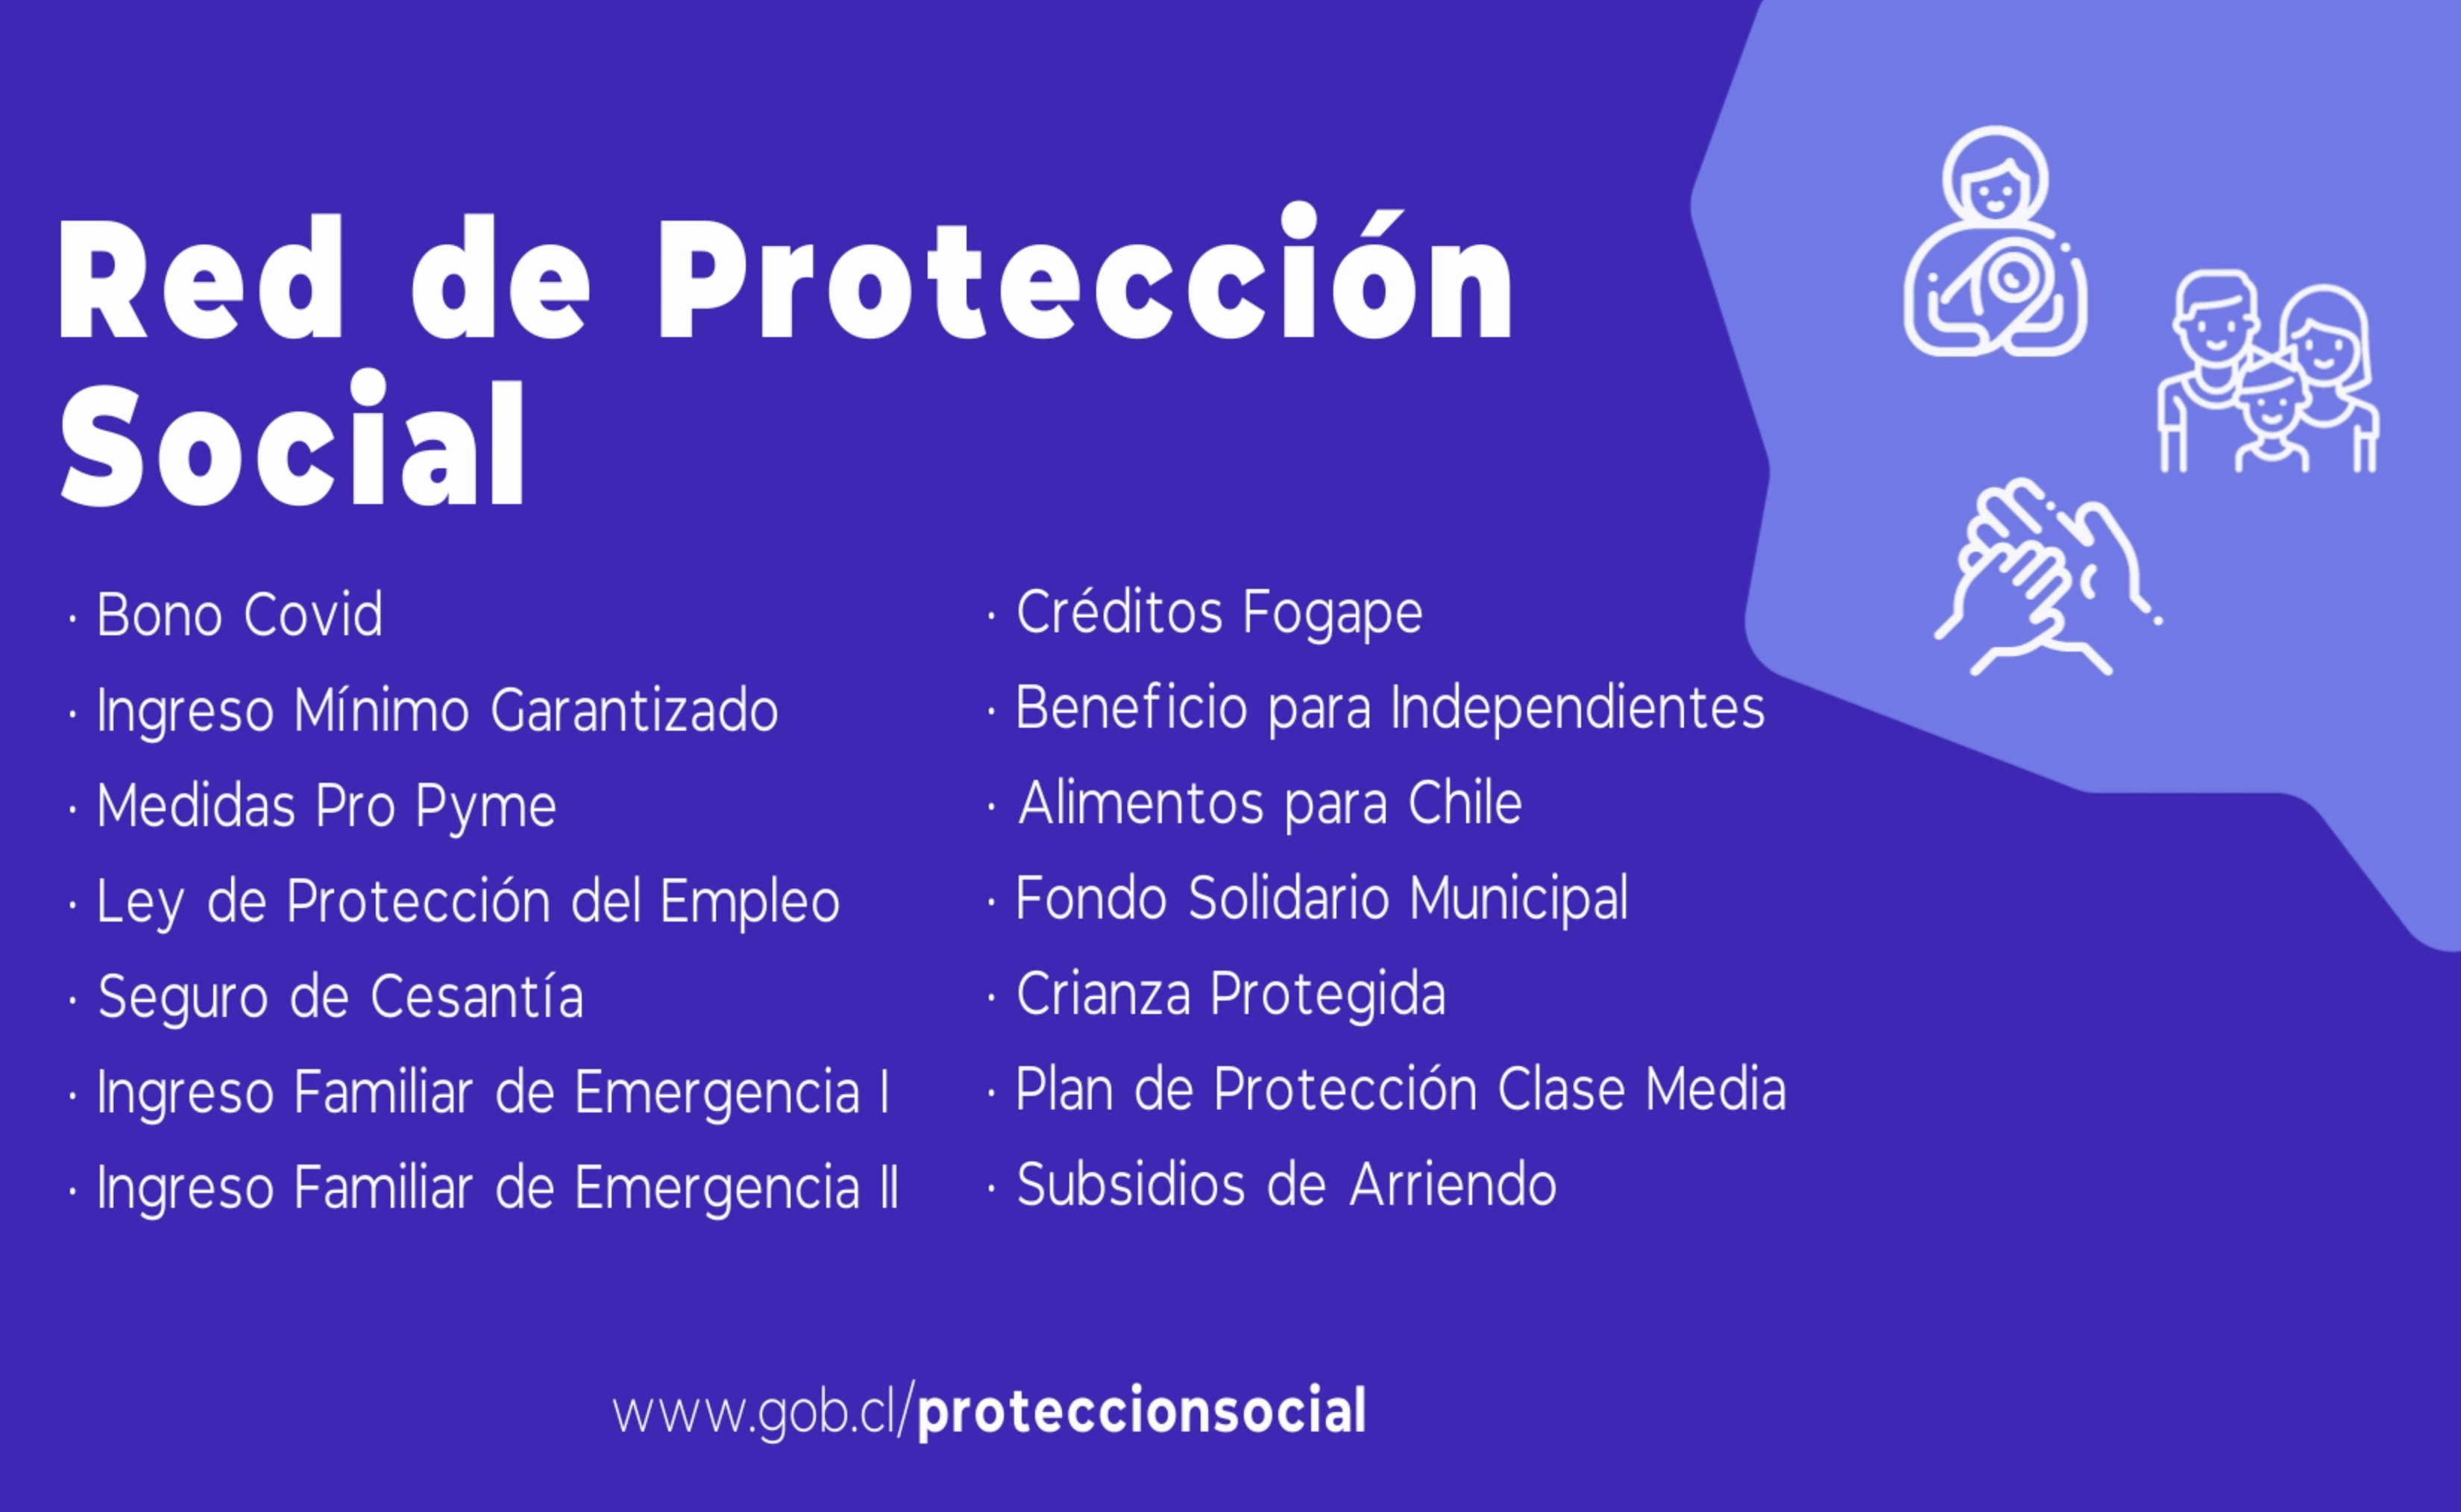 red de proteccion social